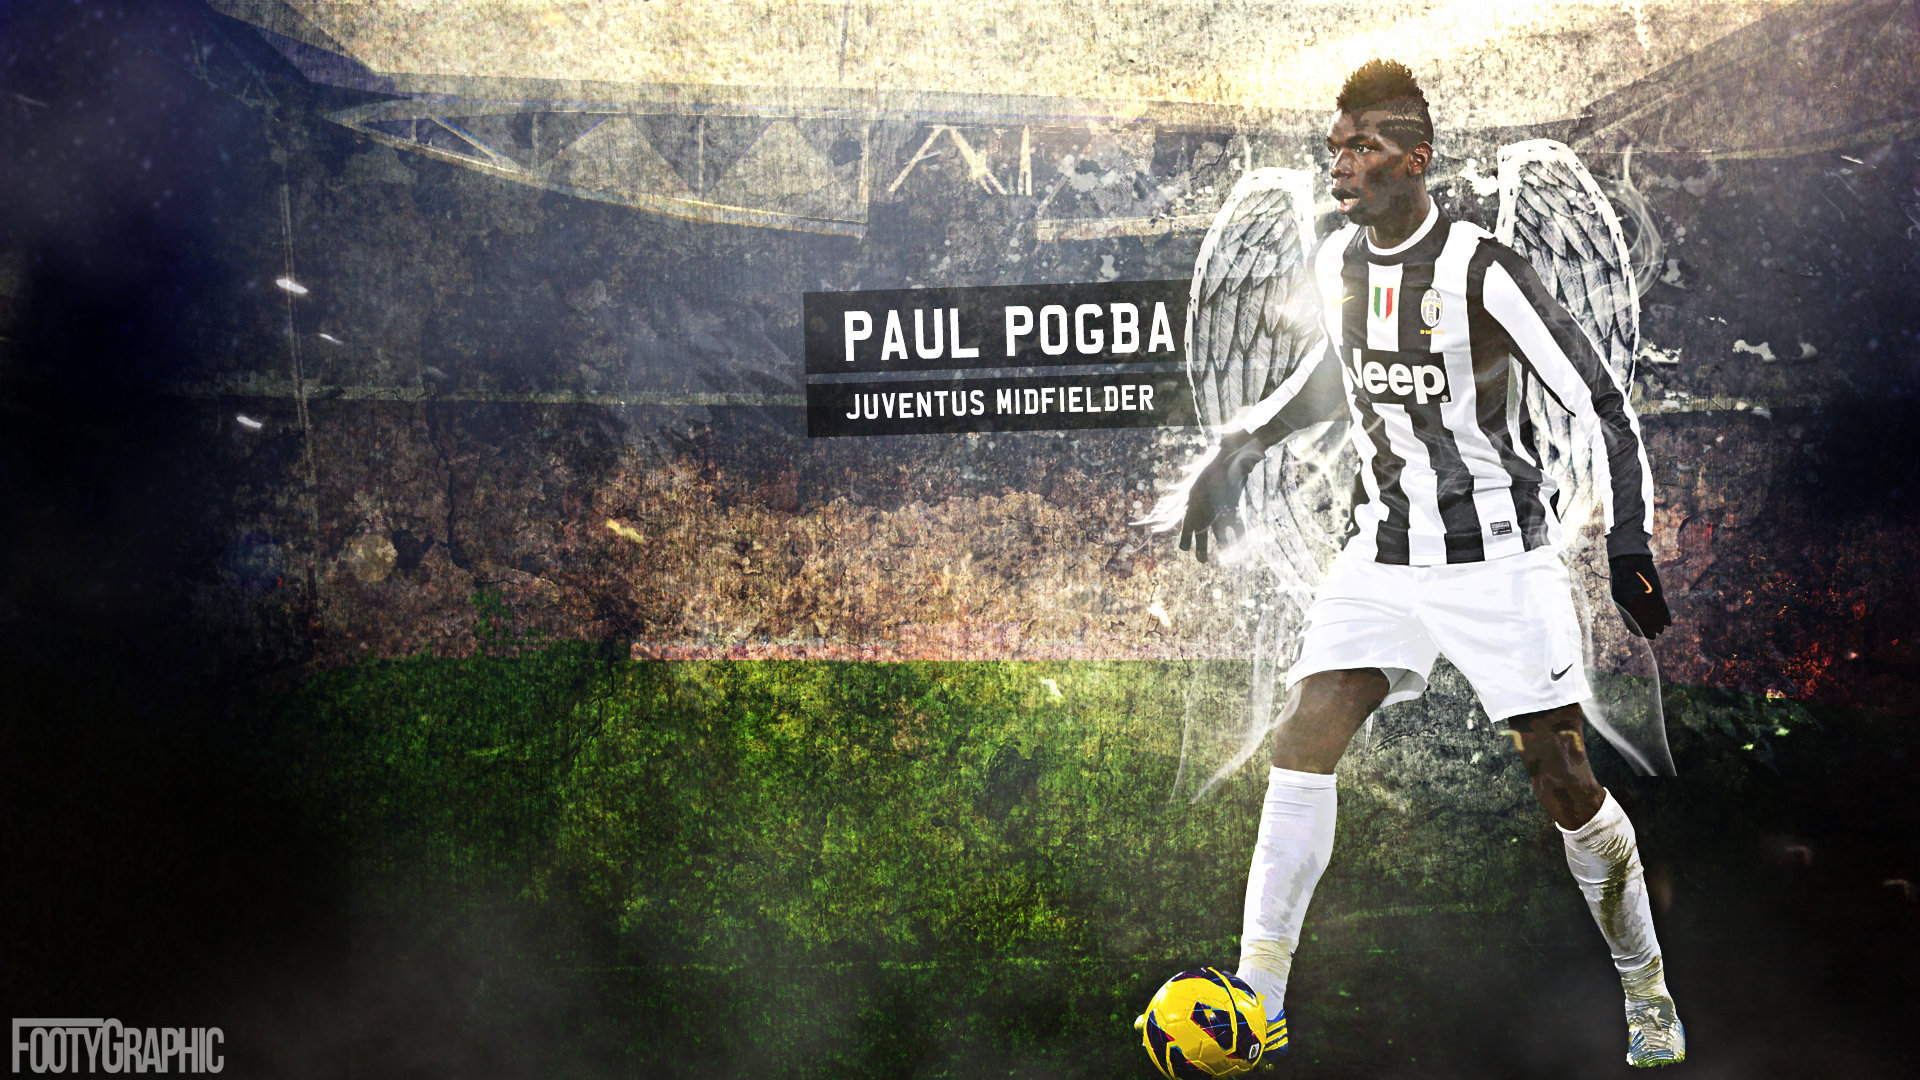 Paul Labile Pogba Wallpapers Images Photos Pictures